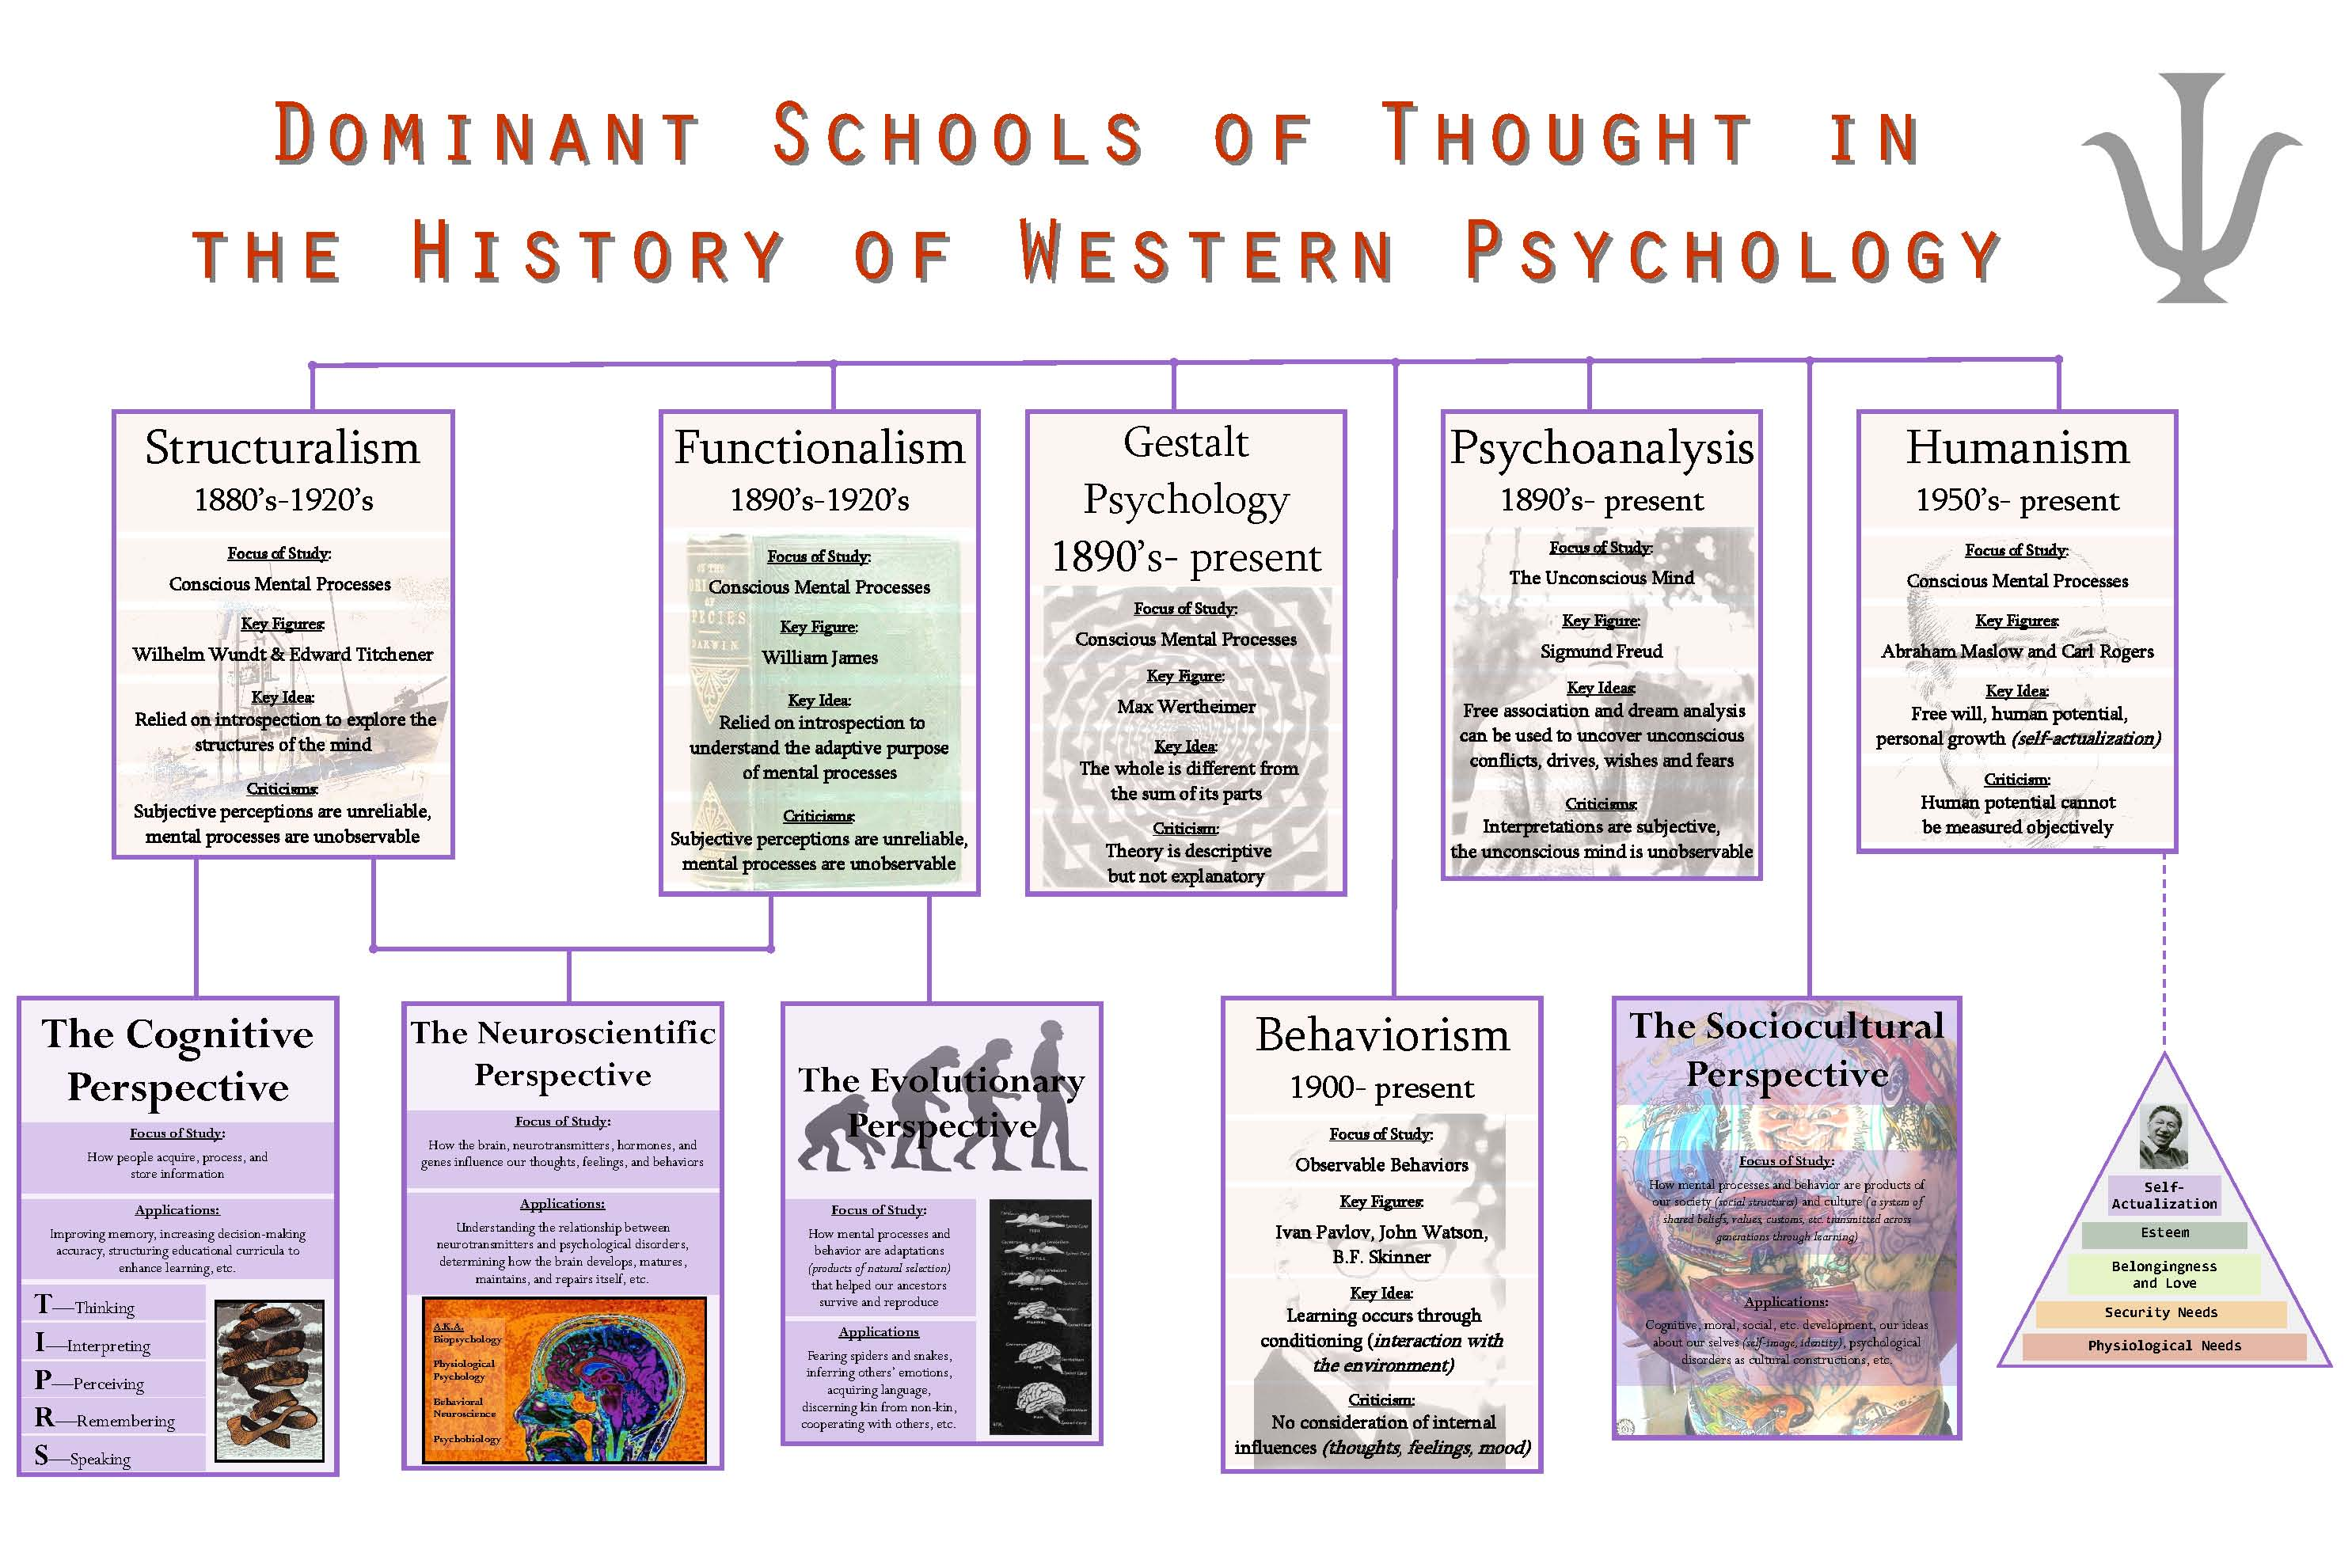 a study on the psychological theories of behaviorism psychoanalysis and humanism Humanism is a psychological perspective that emphasizes the study of the whole person humanistic psychologists look at human behavior not only through the eyes of the observer, but through the eyes of the person doing the behaving sometimes the humanistic approach is called phenomenological.